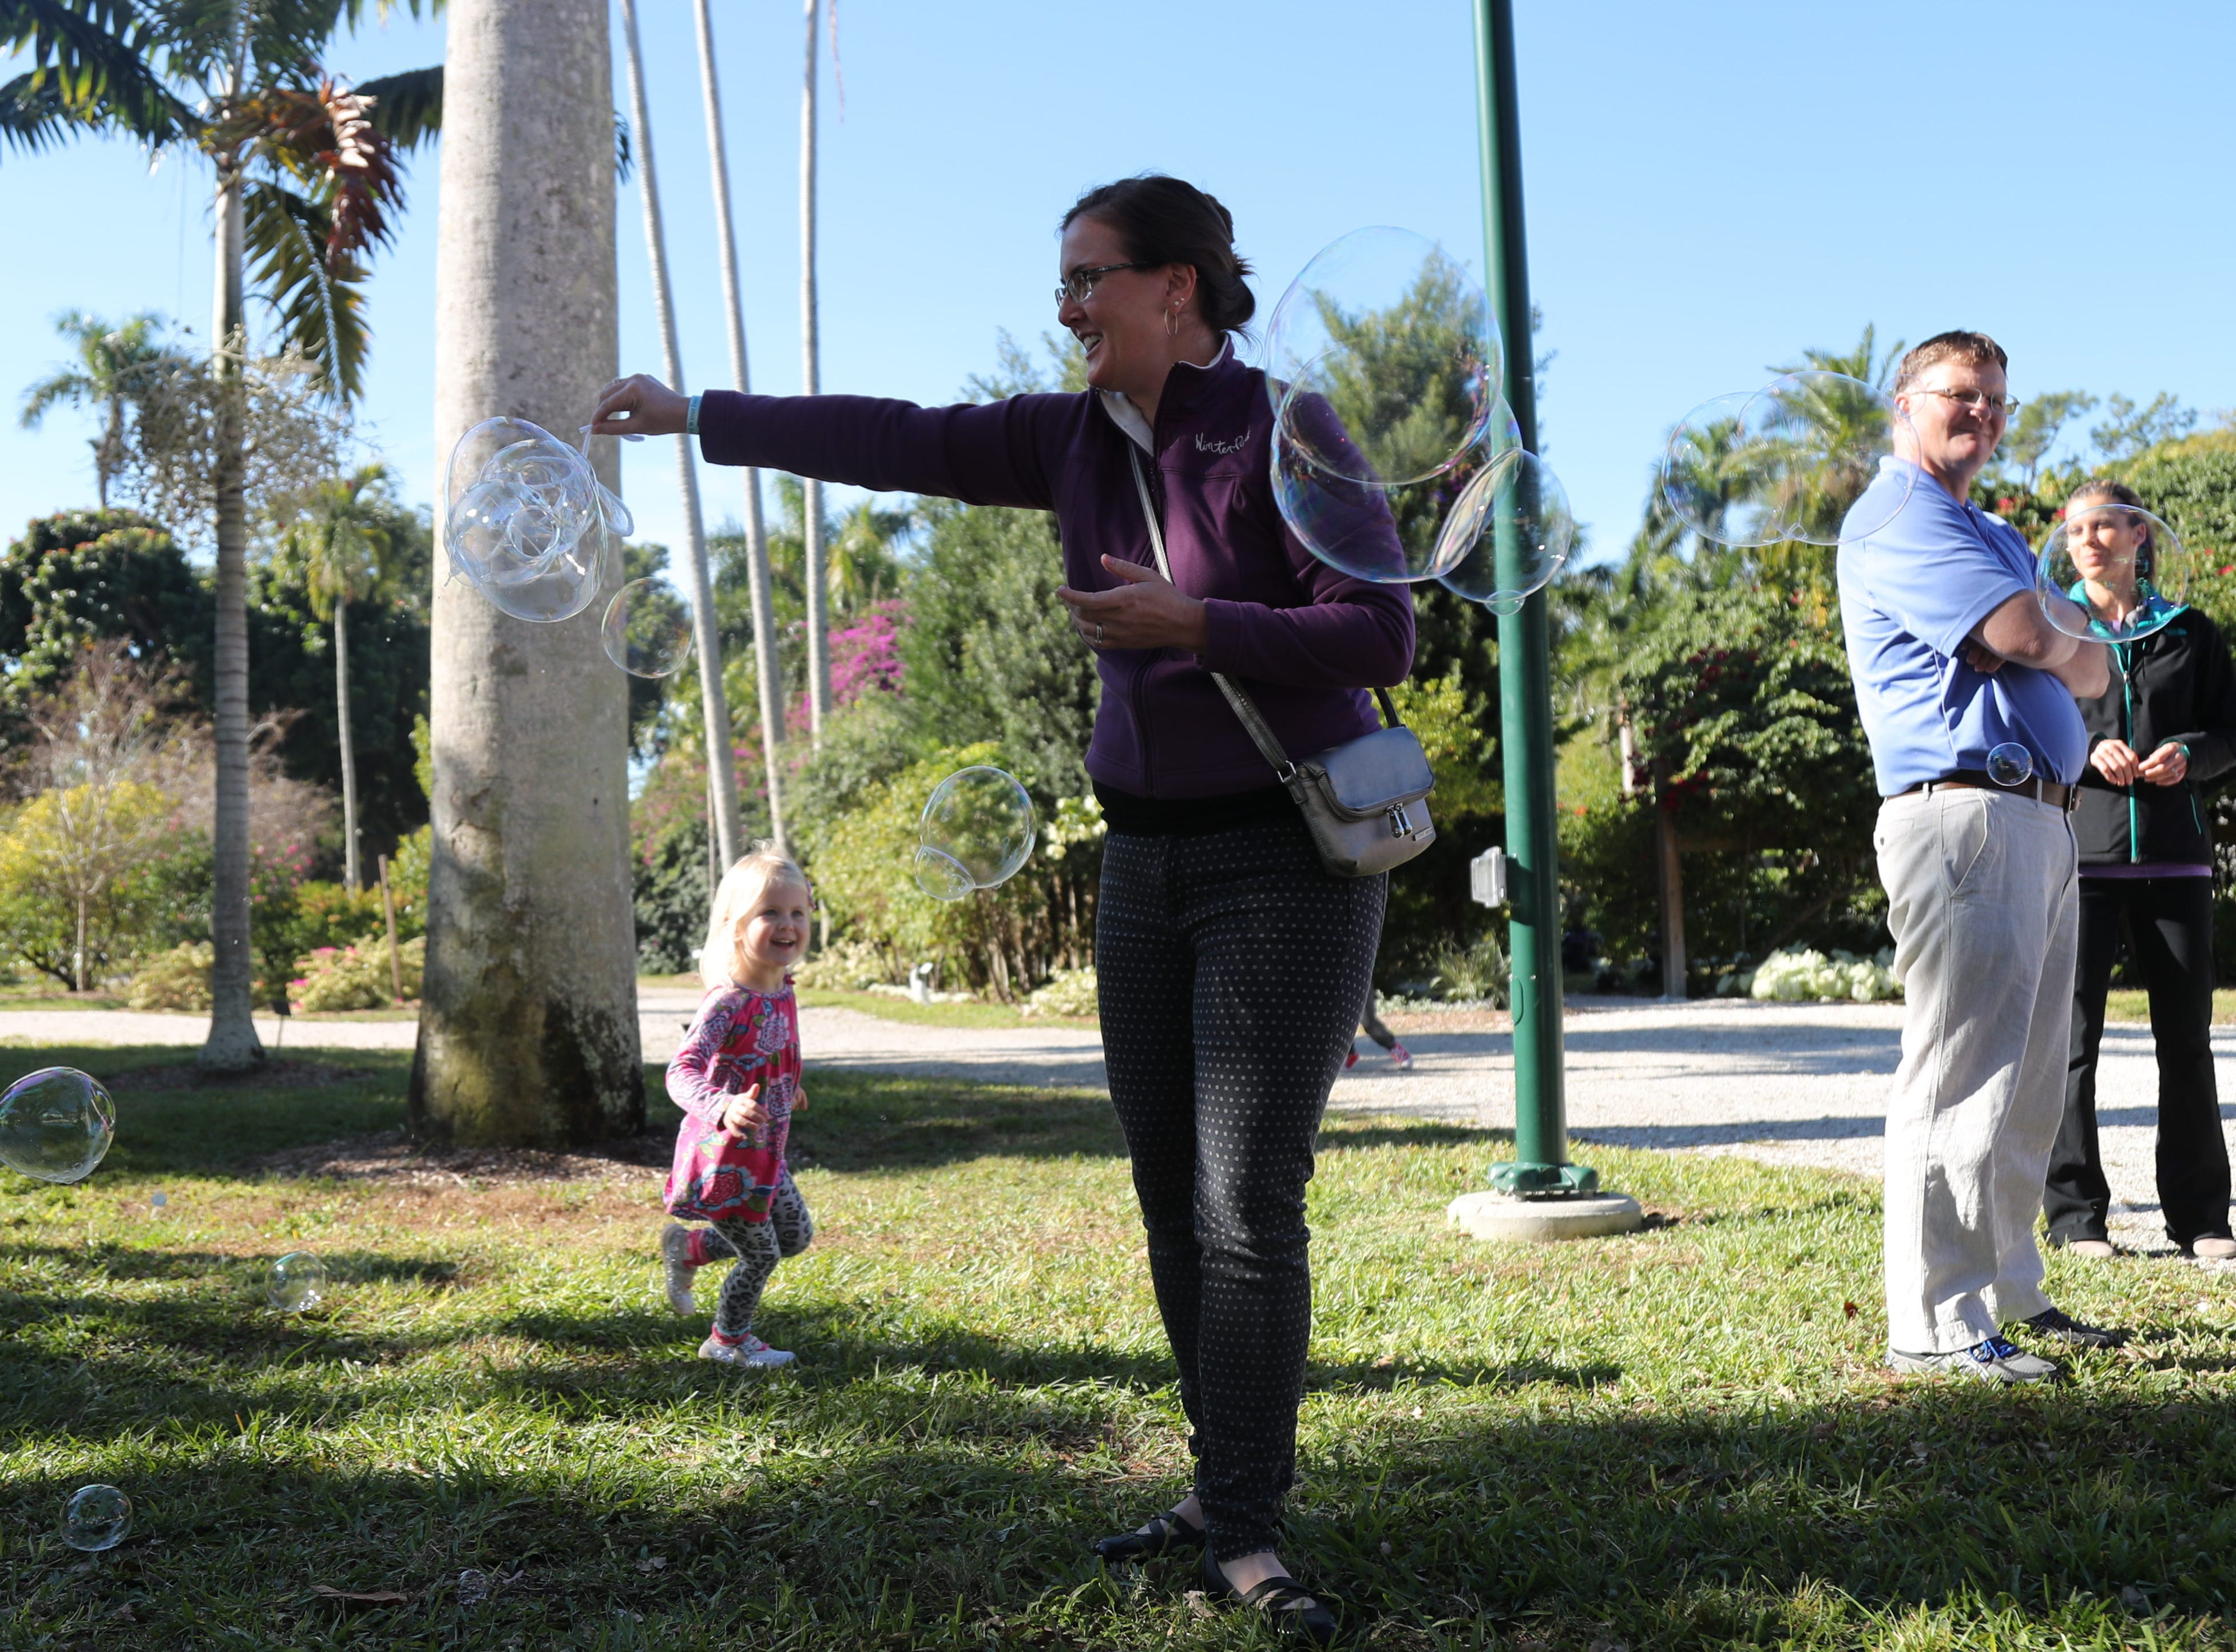 Kids and their parents gathered to learn about the science of bubbles during the monthly Emerging Inventors program on Thursday, January 17, 2019, at the Edison & Ford Winter Estates in Fort Myers. This month's program was called Bouncing Bubbles. The next program, which is for children 5 and younger, is February 21 at 9:30 am, and is called is LEGO Art and Engineering.